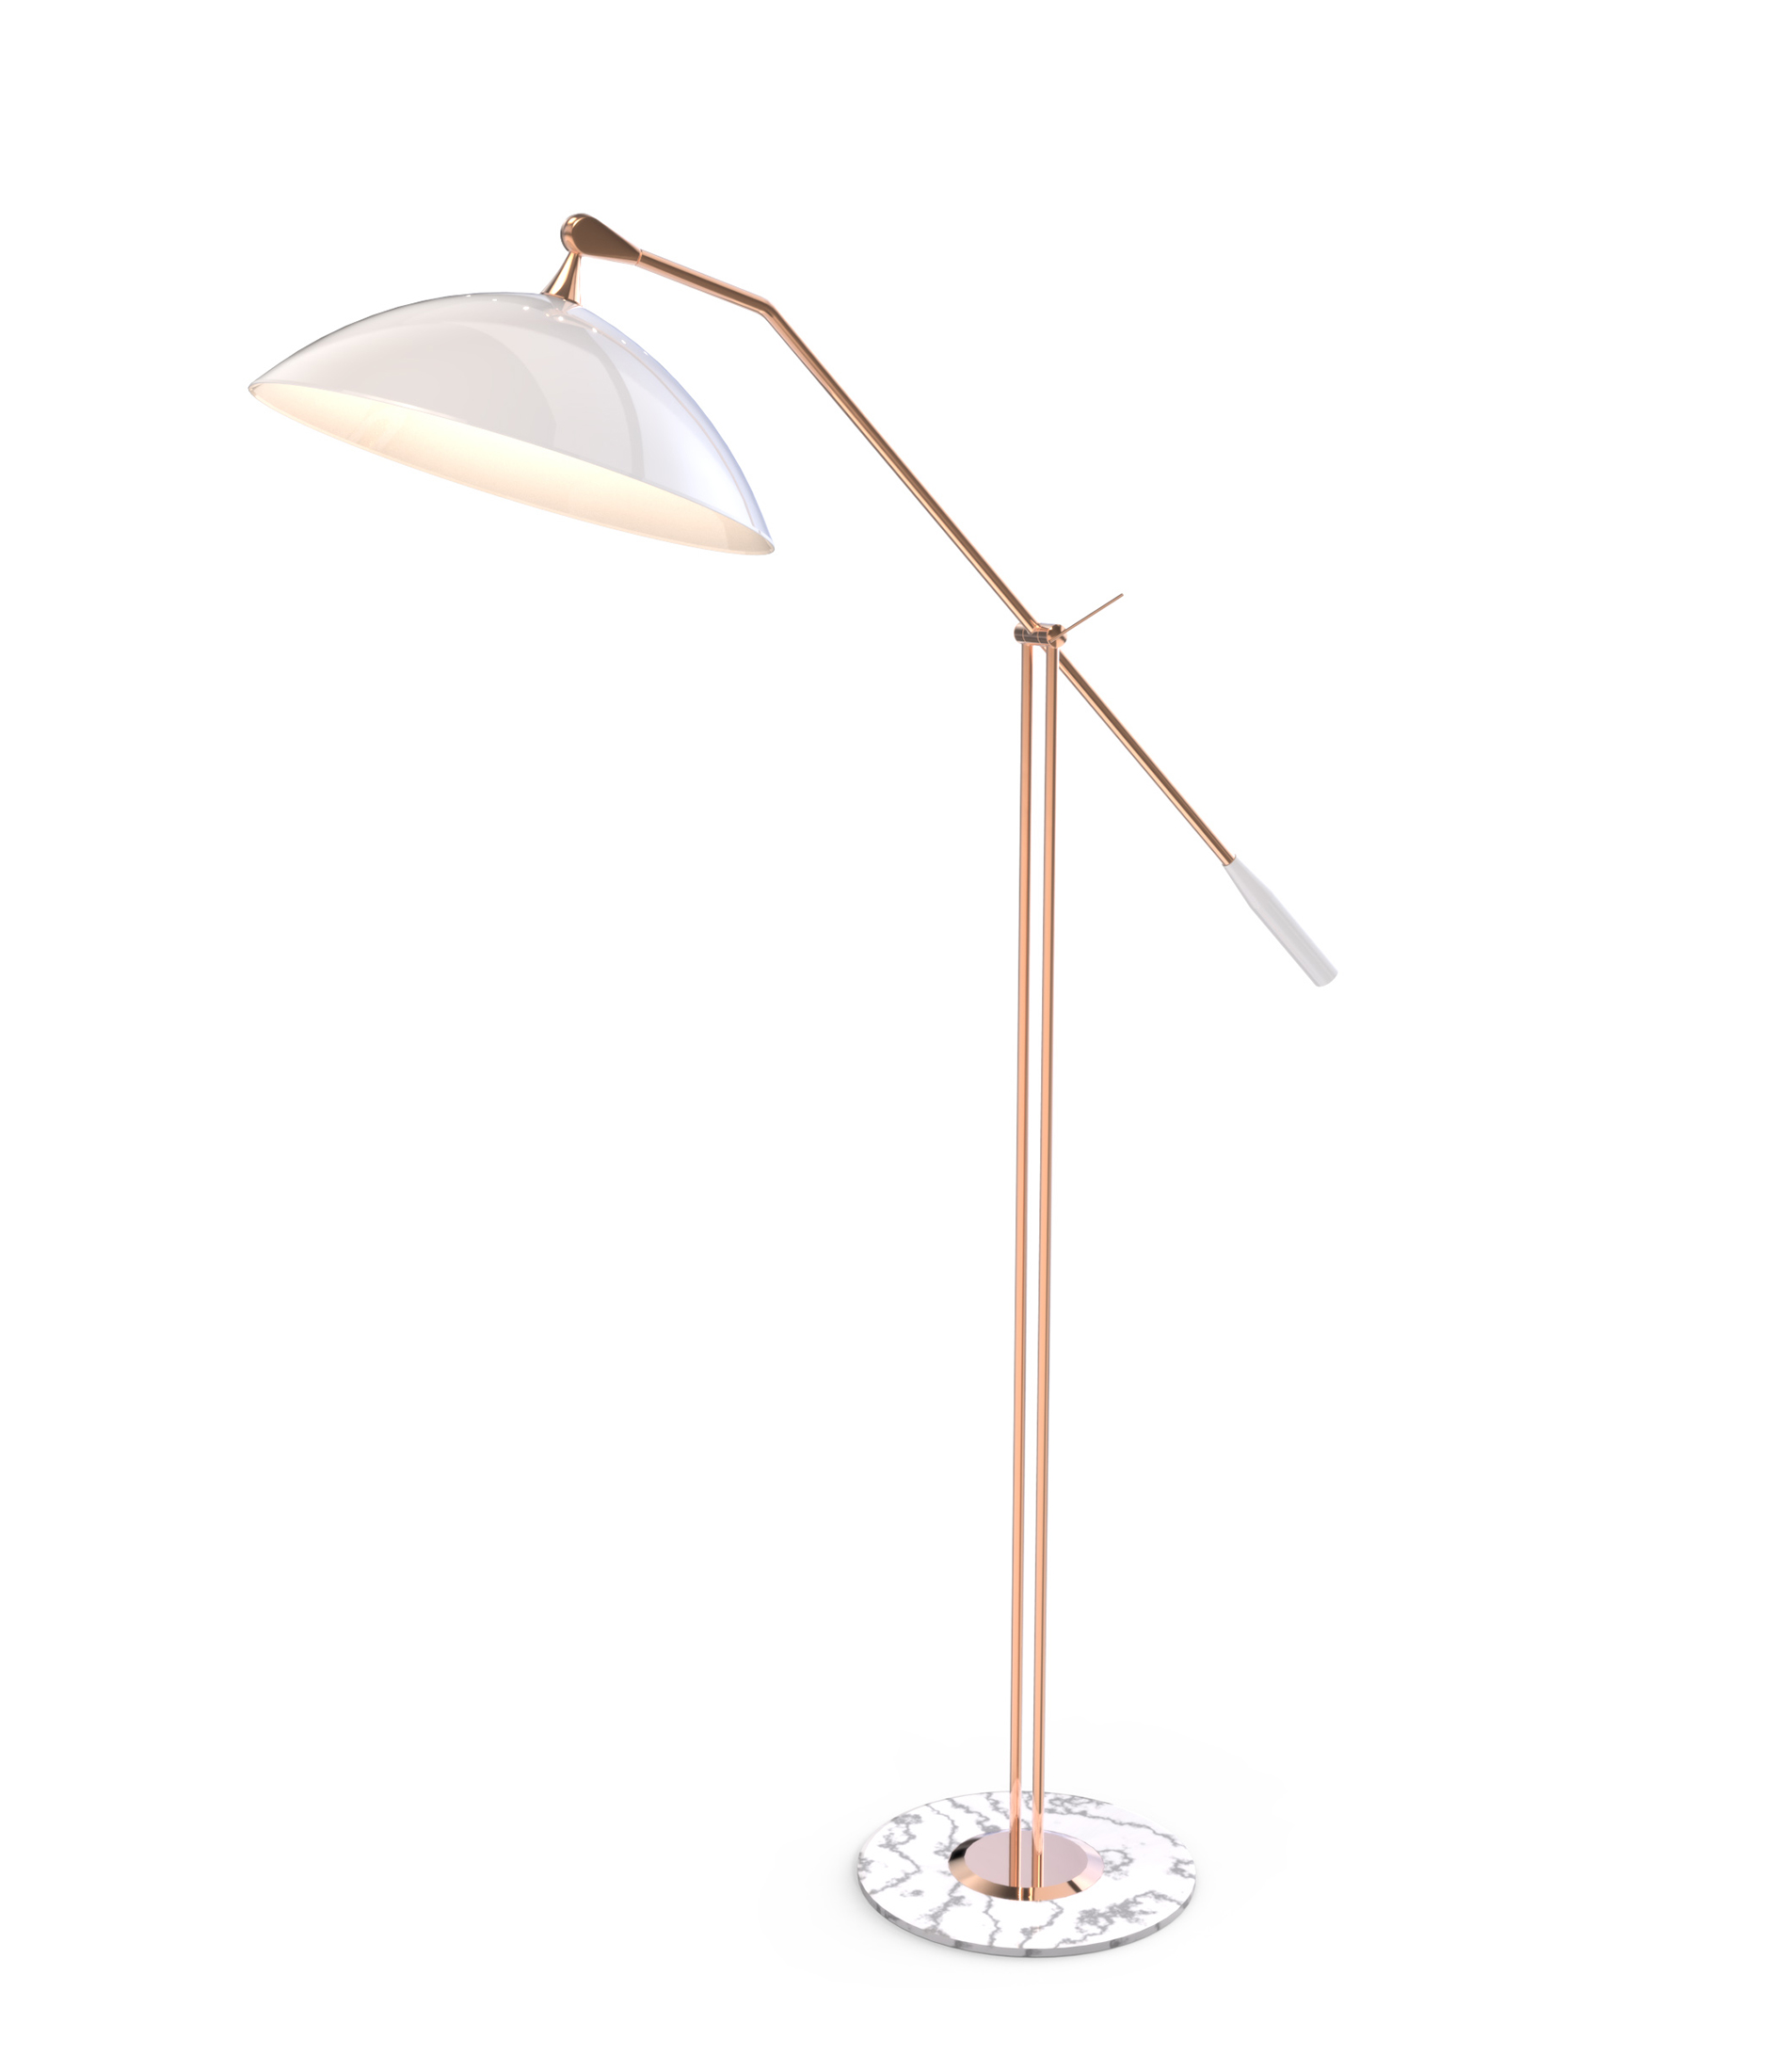 Bright Ideas The Perfect Floor Lamp for Your Scandinavian Design 1 modern floor lamp Bright Ideas: The Perfect Modern Floor Lamp for A Scandinavian Design Bright Ideas The Perfect Modern Floor Lamp for Your Scandinavian Design 1